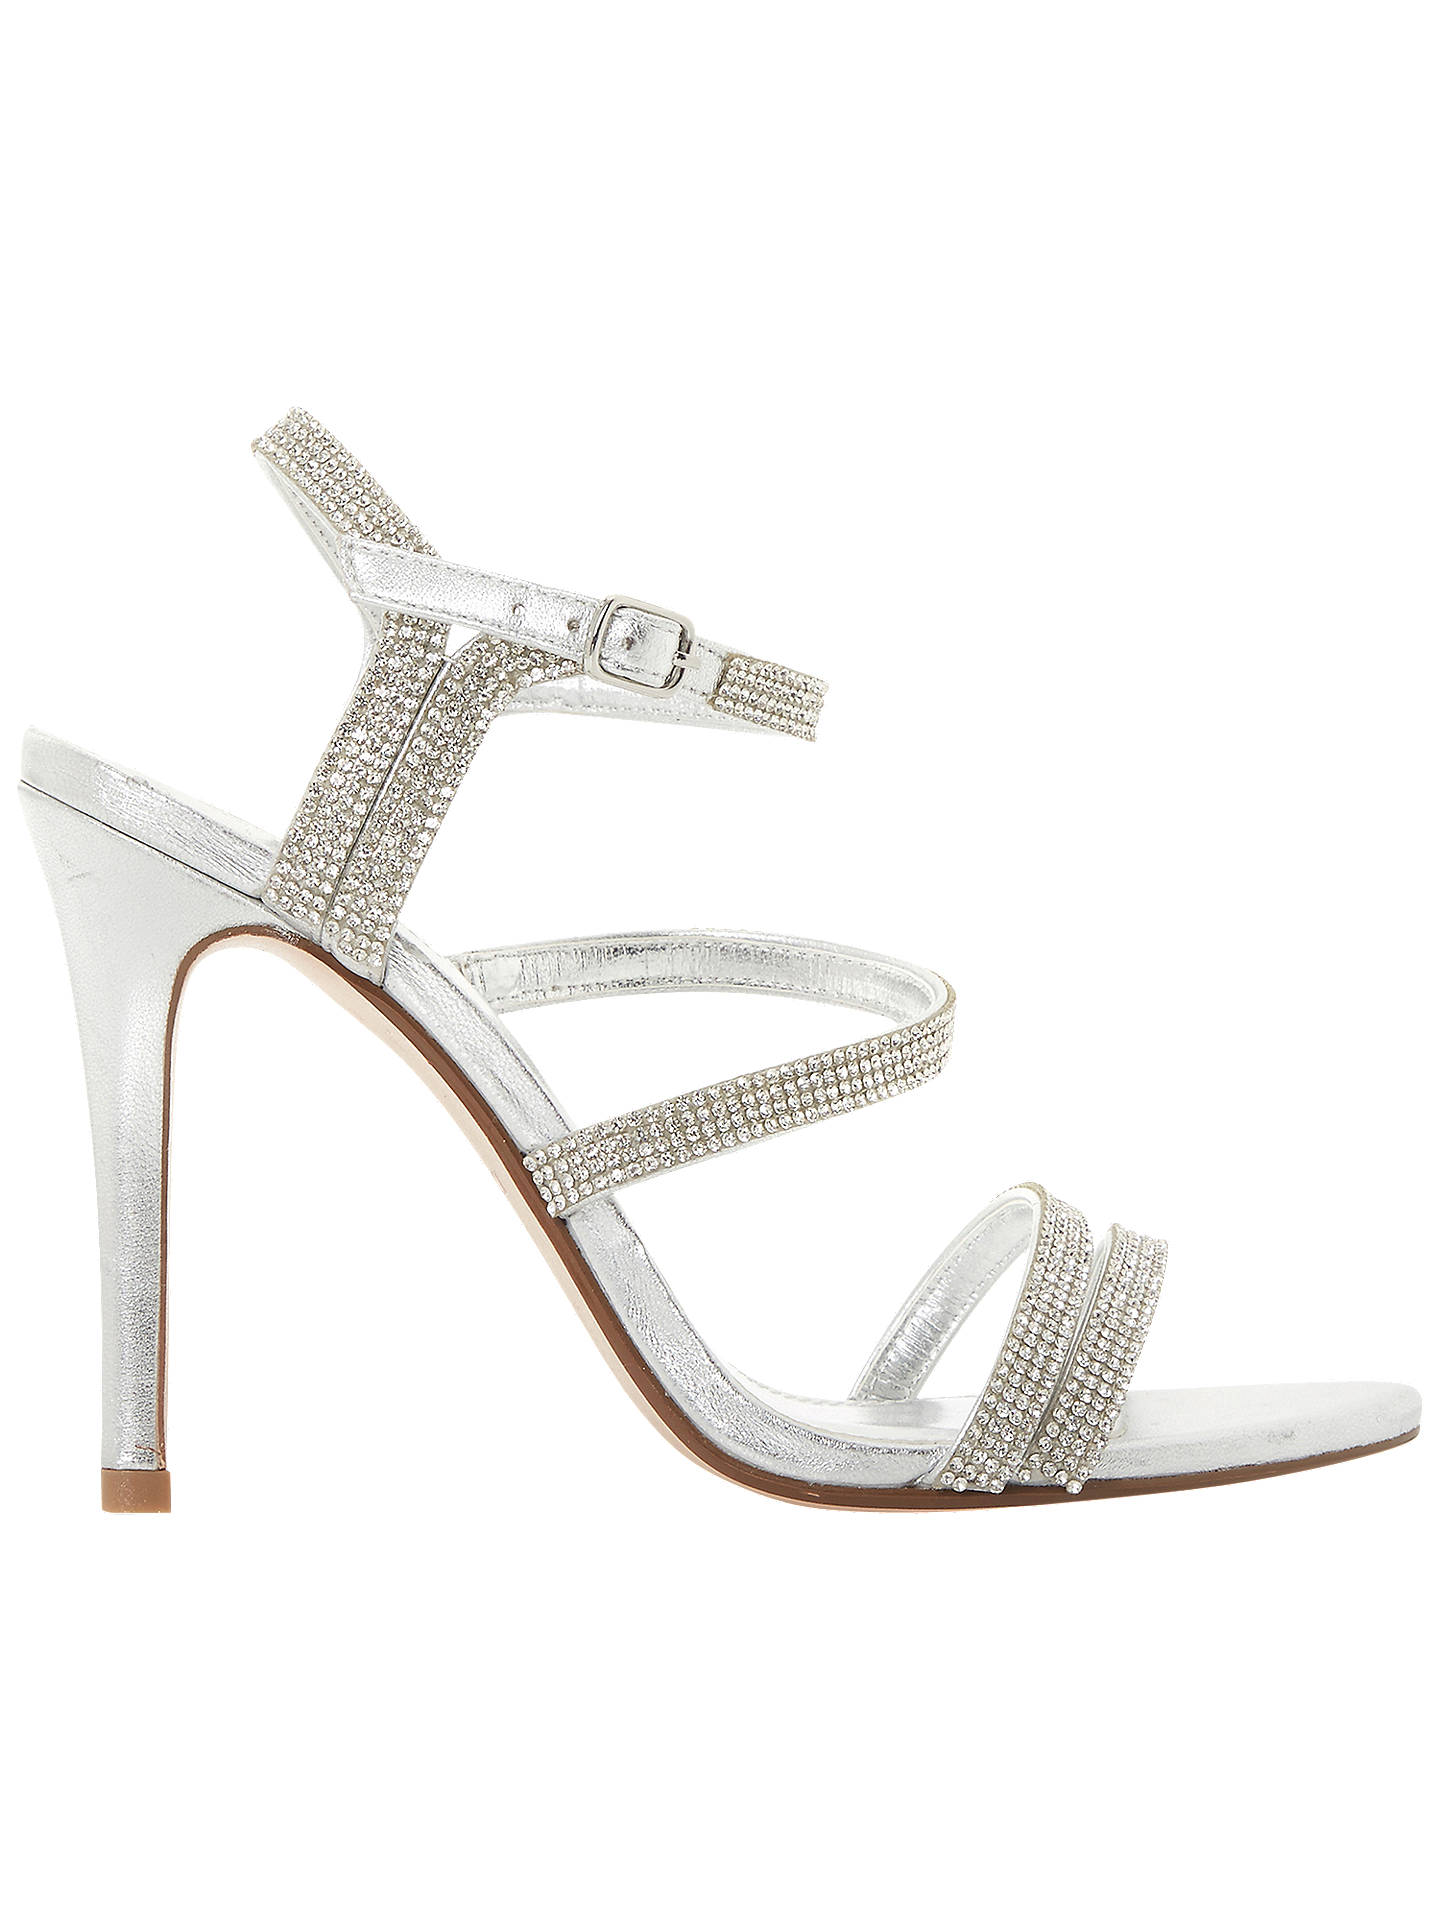 ae73f5860c8 Buy Dune Madonna Embellished Strappy Stiletto Heel Sandals